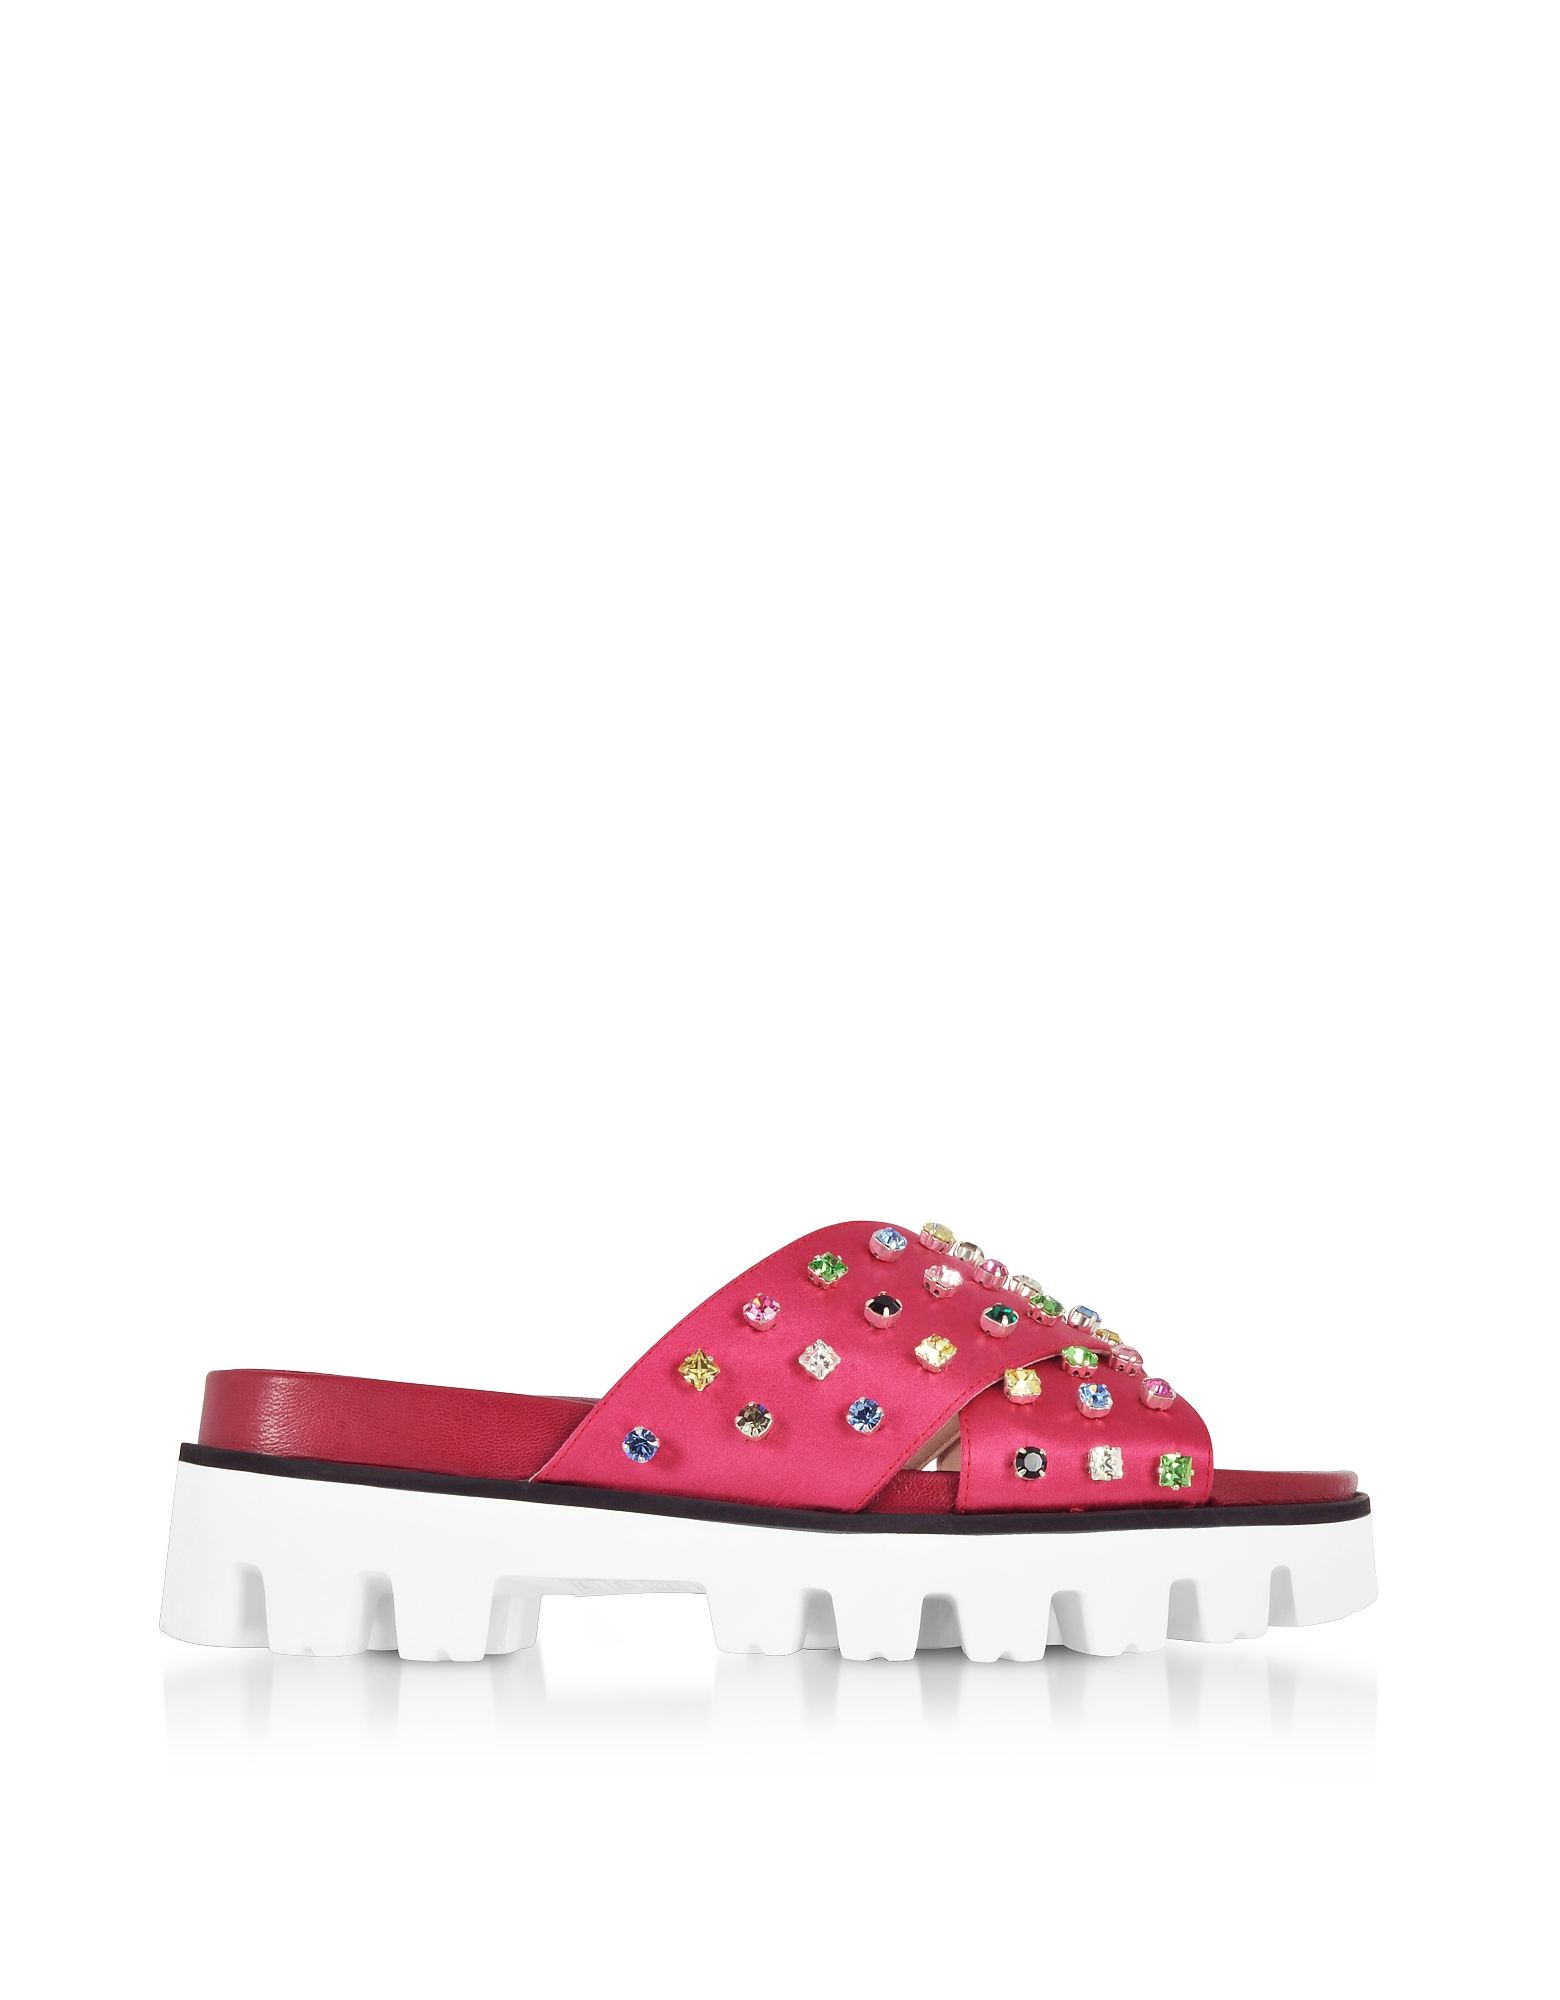 RED Valentino Shoes, Azalea Canvas Slide Sandals w/Crystals